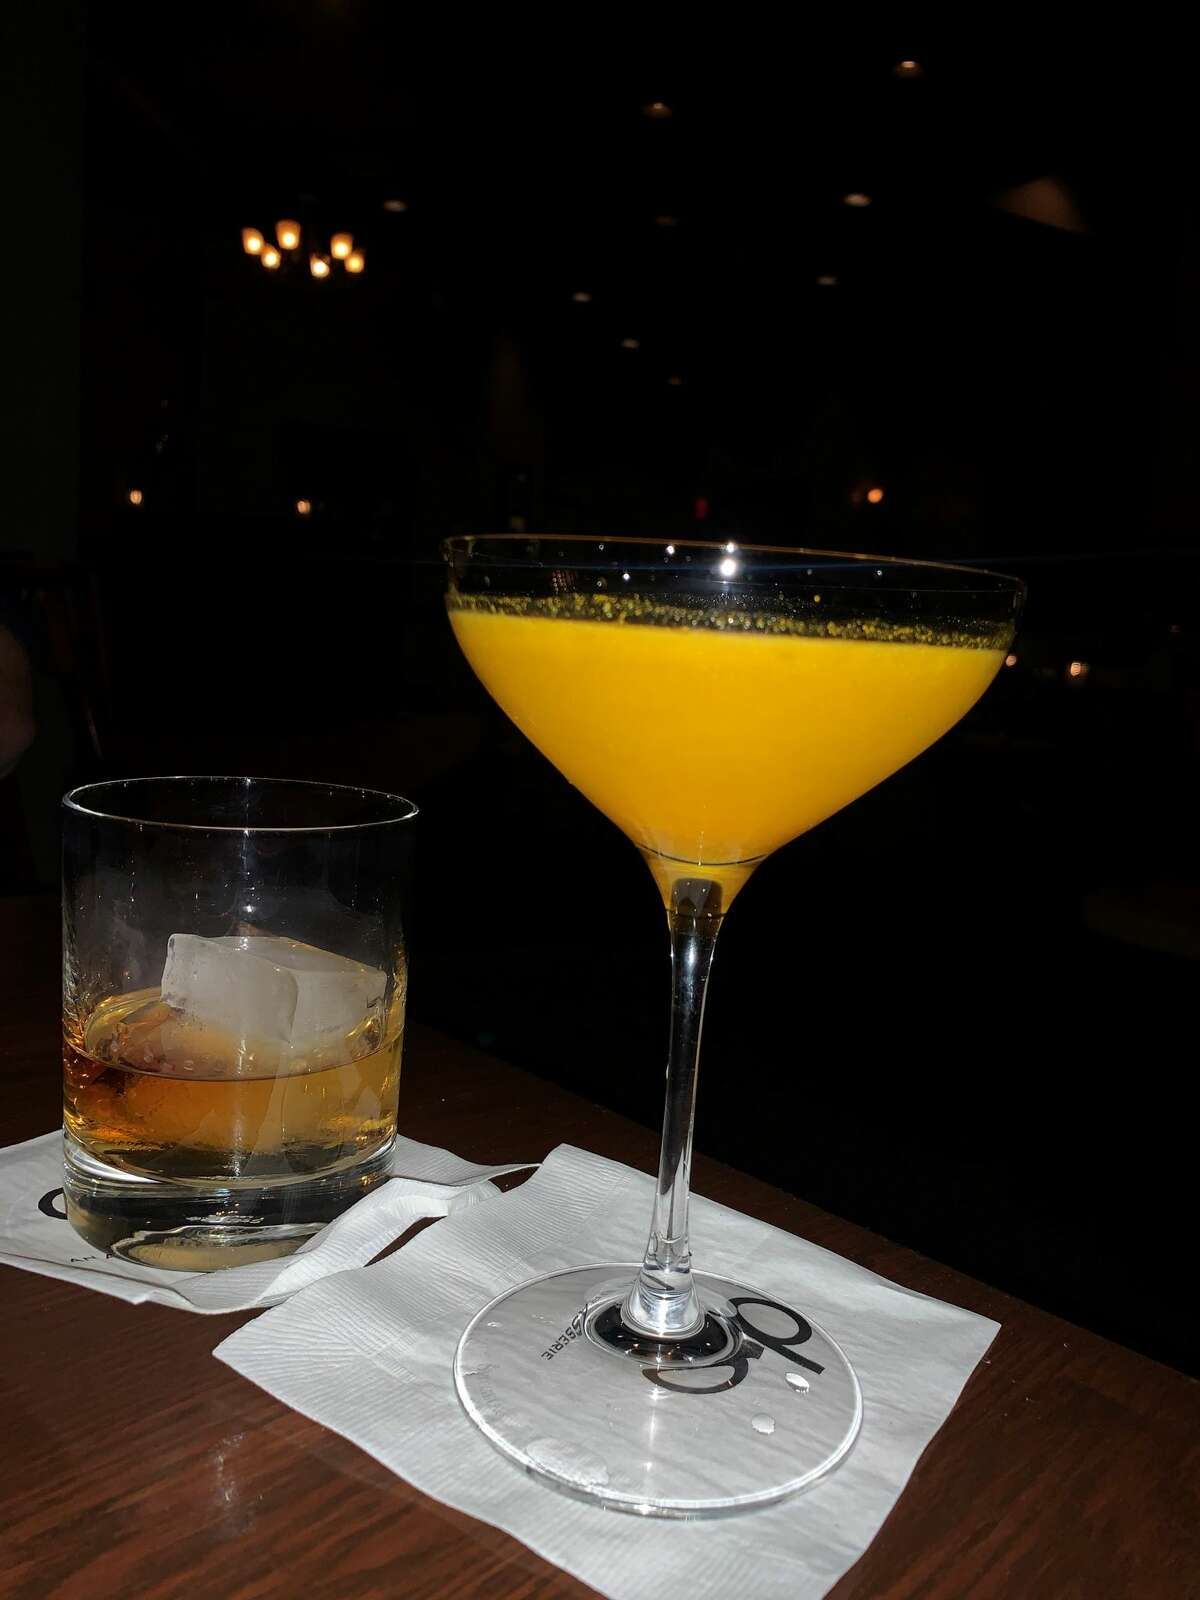 At right, the Dutch Baby cocktail from Albany's dp: An American Brasserie.